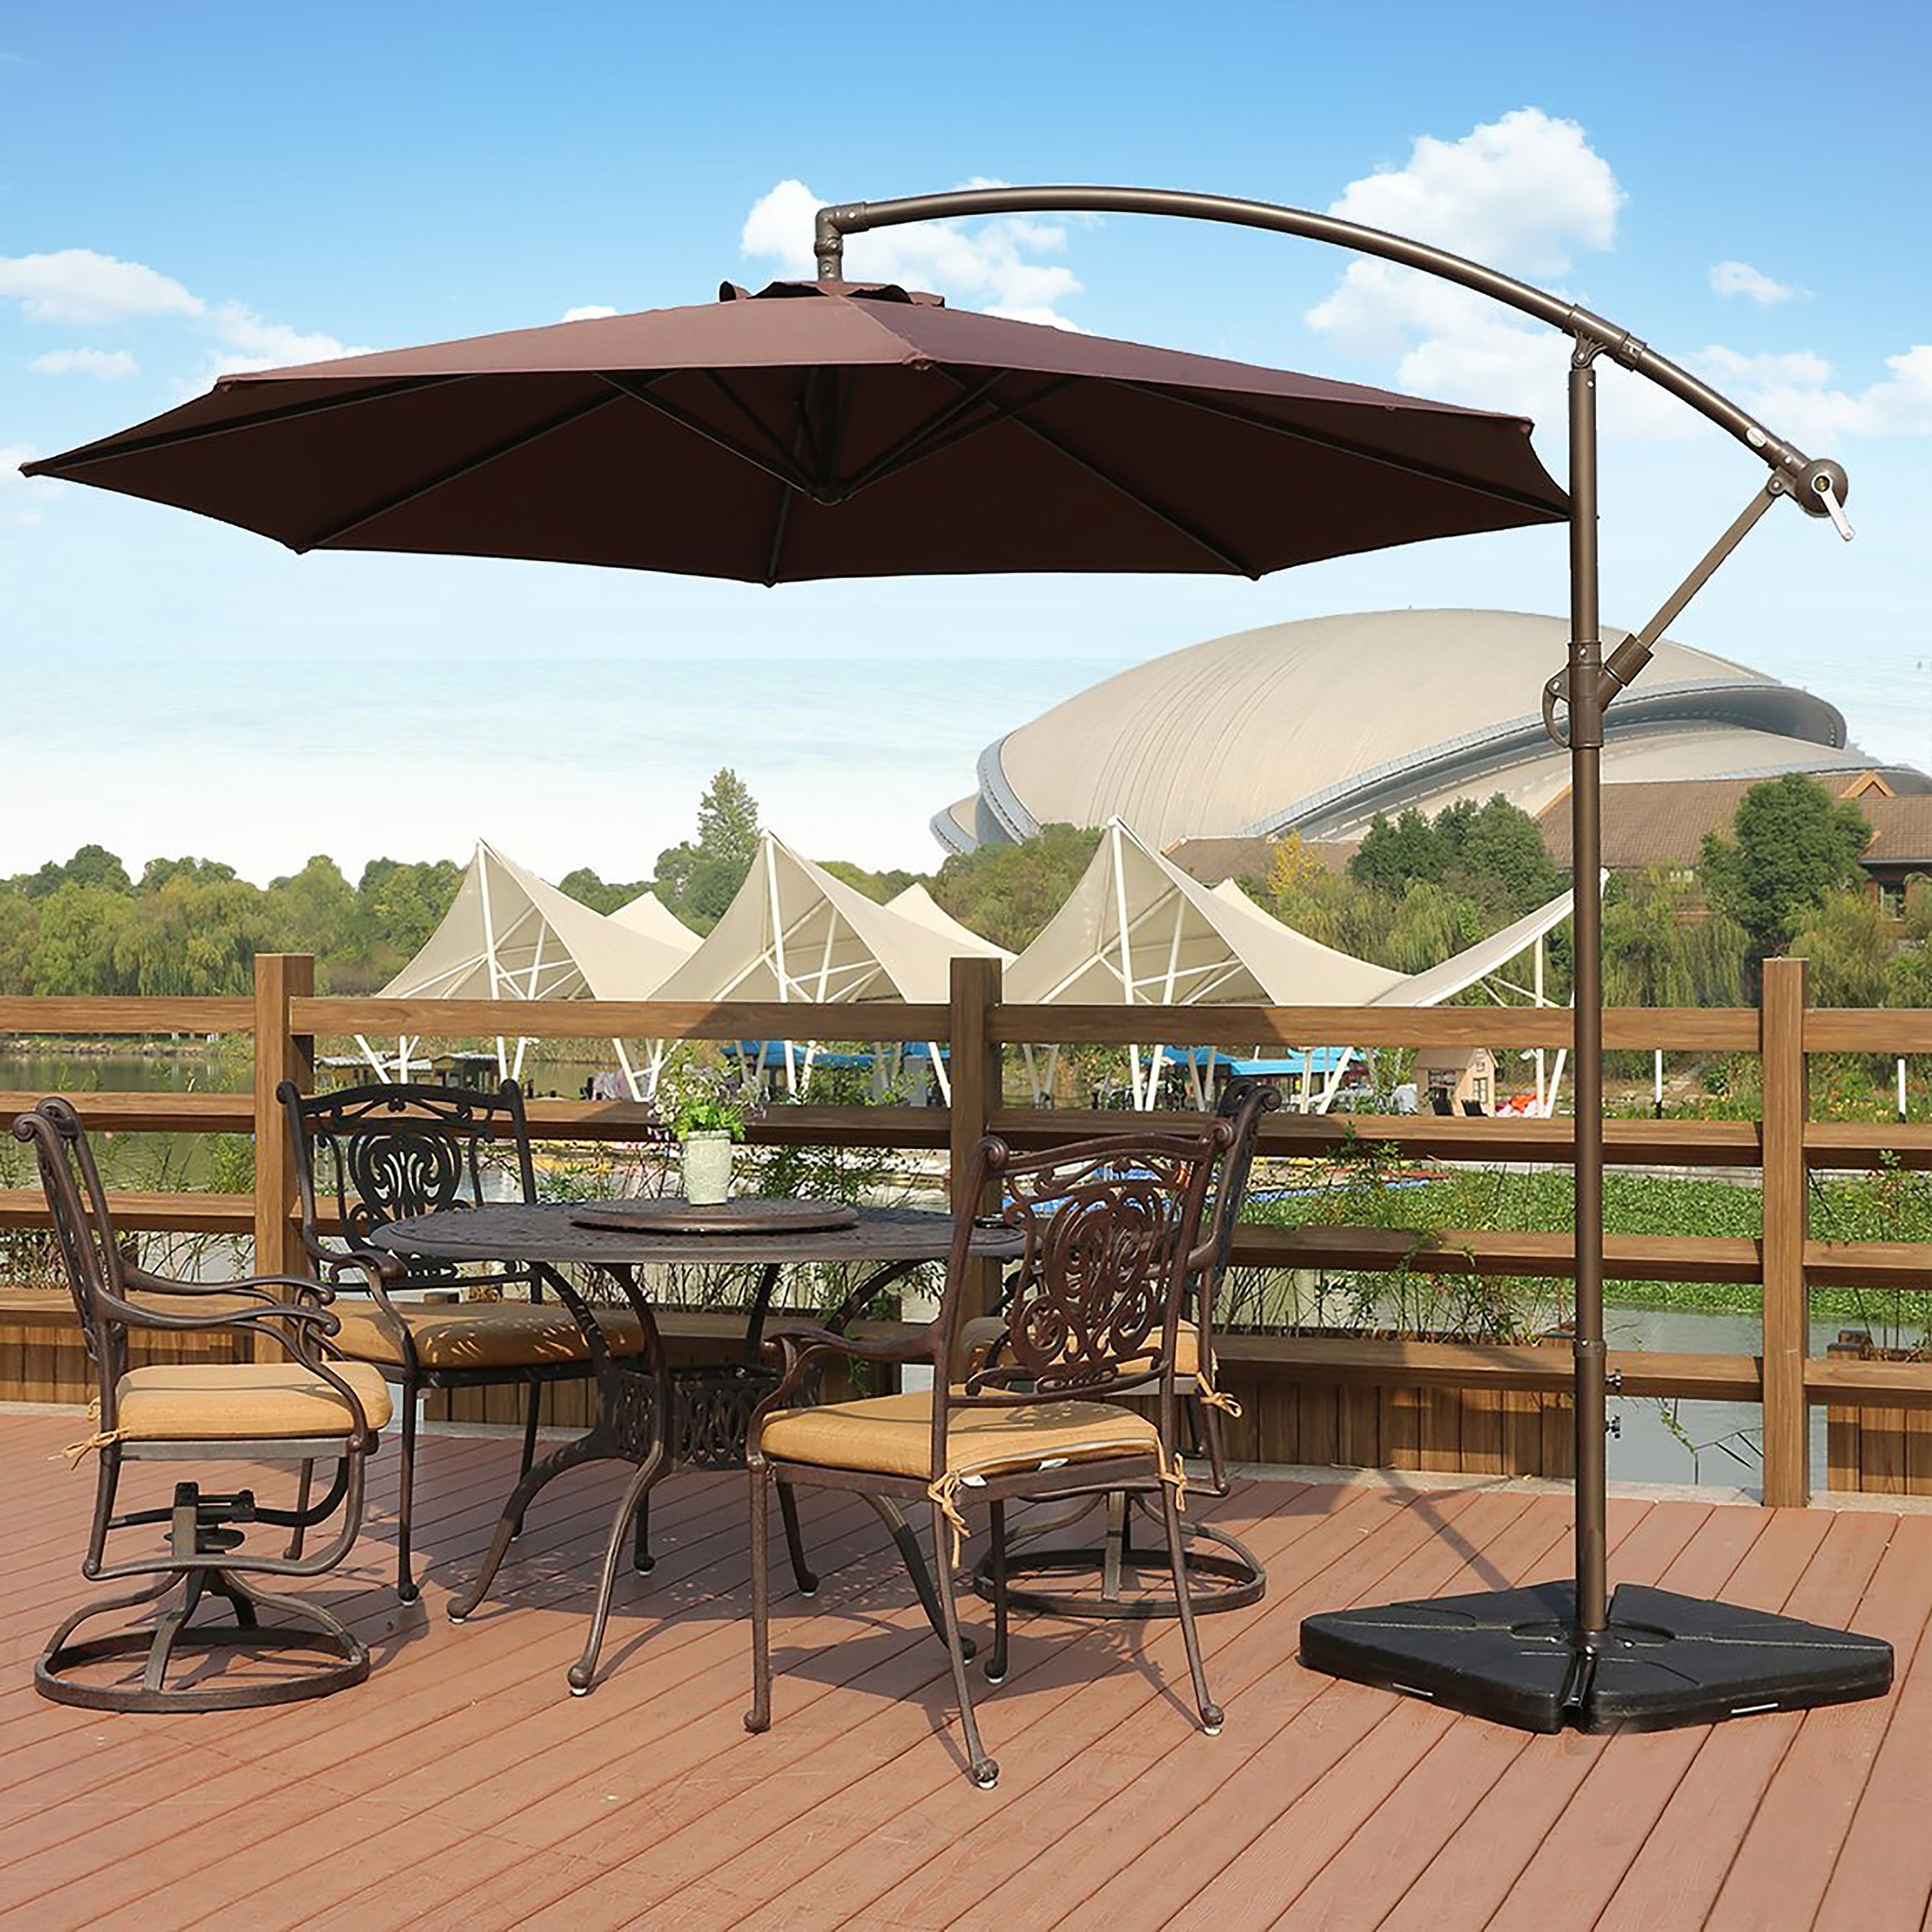 Our Best Patio Umbrellas Within Most Recently Released Bayside Series Cantilever Umbrellas (View 16 of 20)